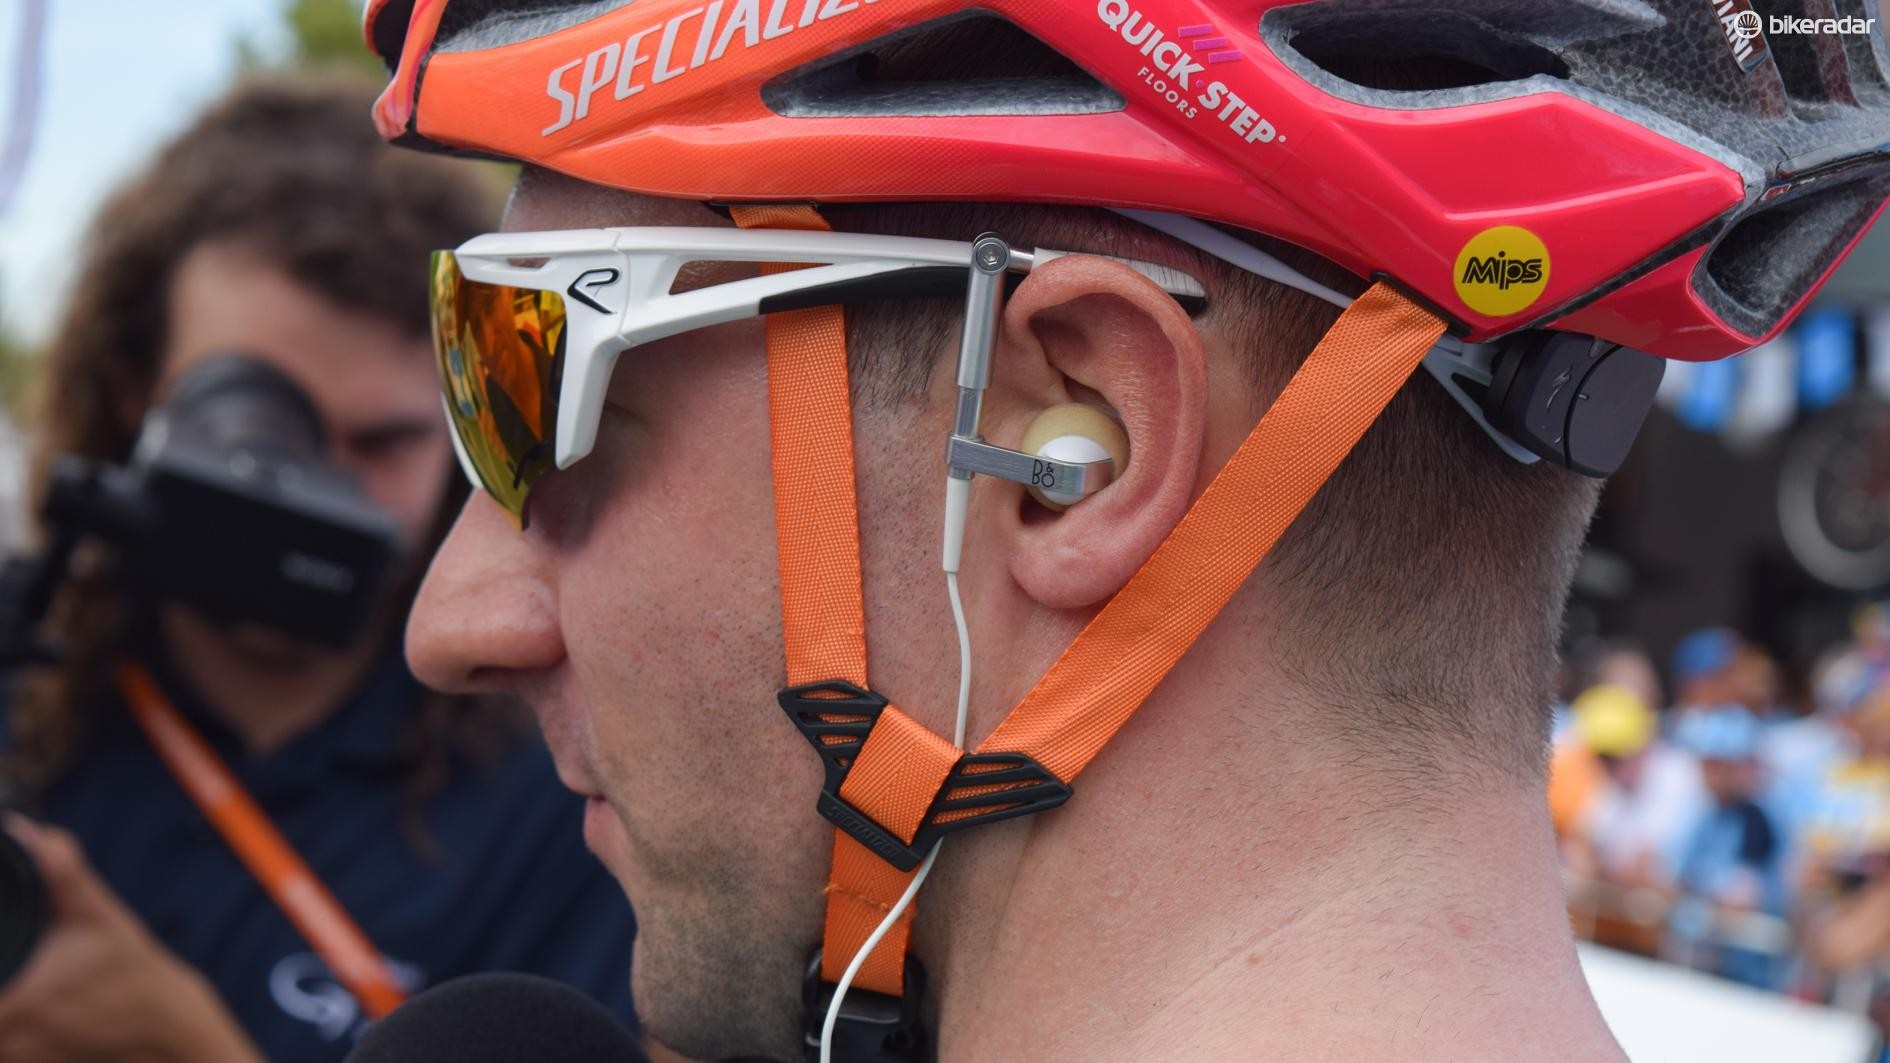 High-end HiFi manufacturer Bang & Olufson supplies Quickstep with radio earpieces that neatly integrate into the team's Ekoi sunglasses